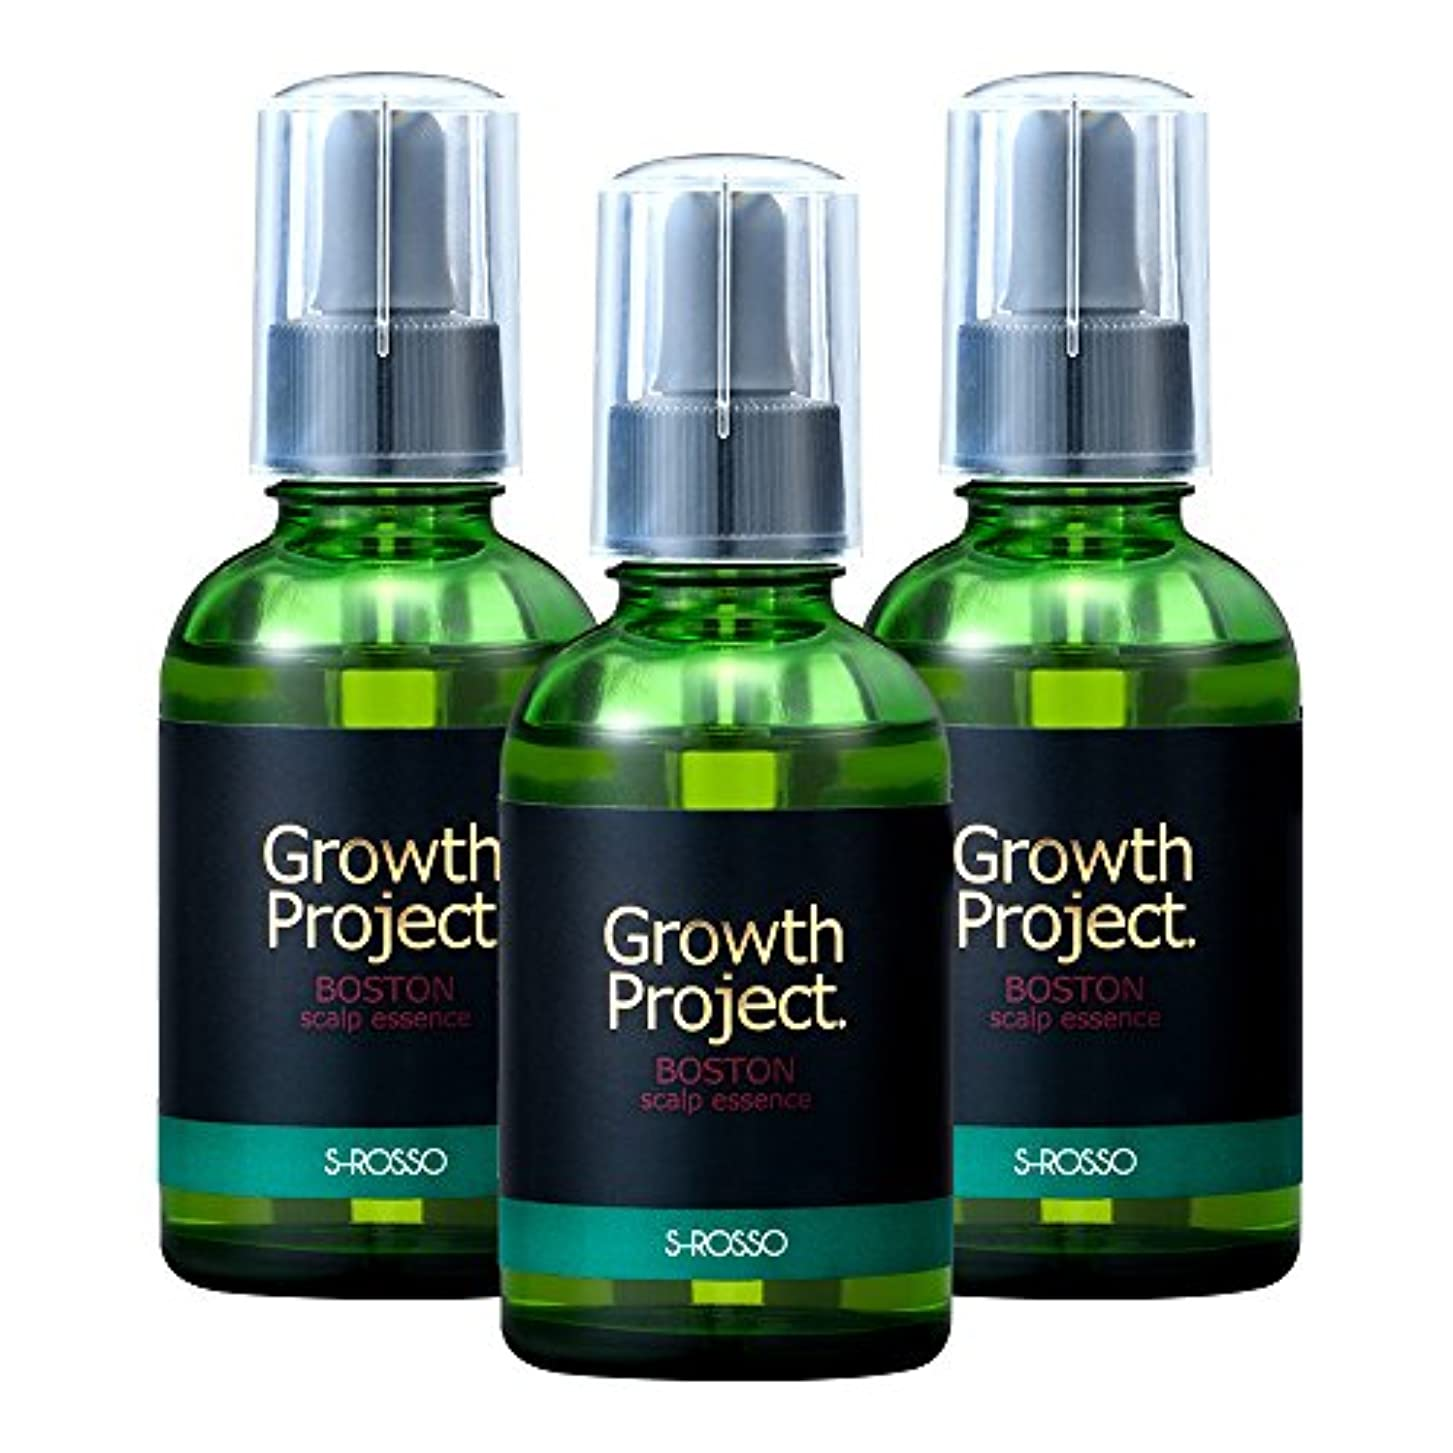 Growth Project スカルプエッセンス 3本セット